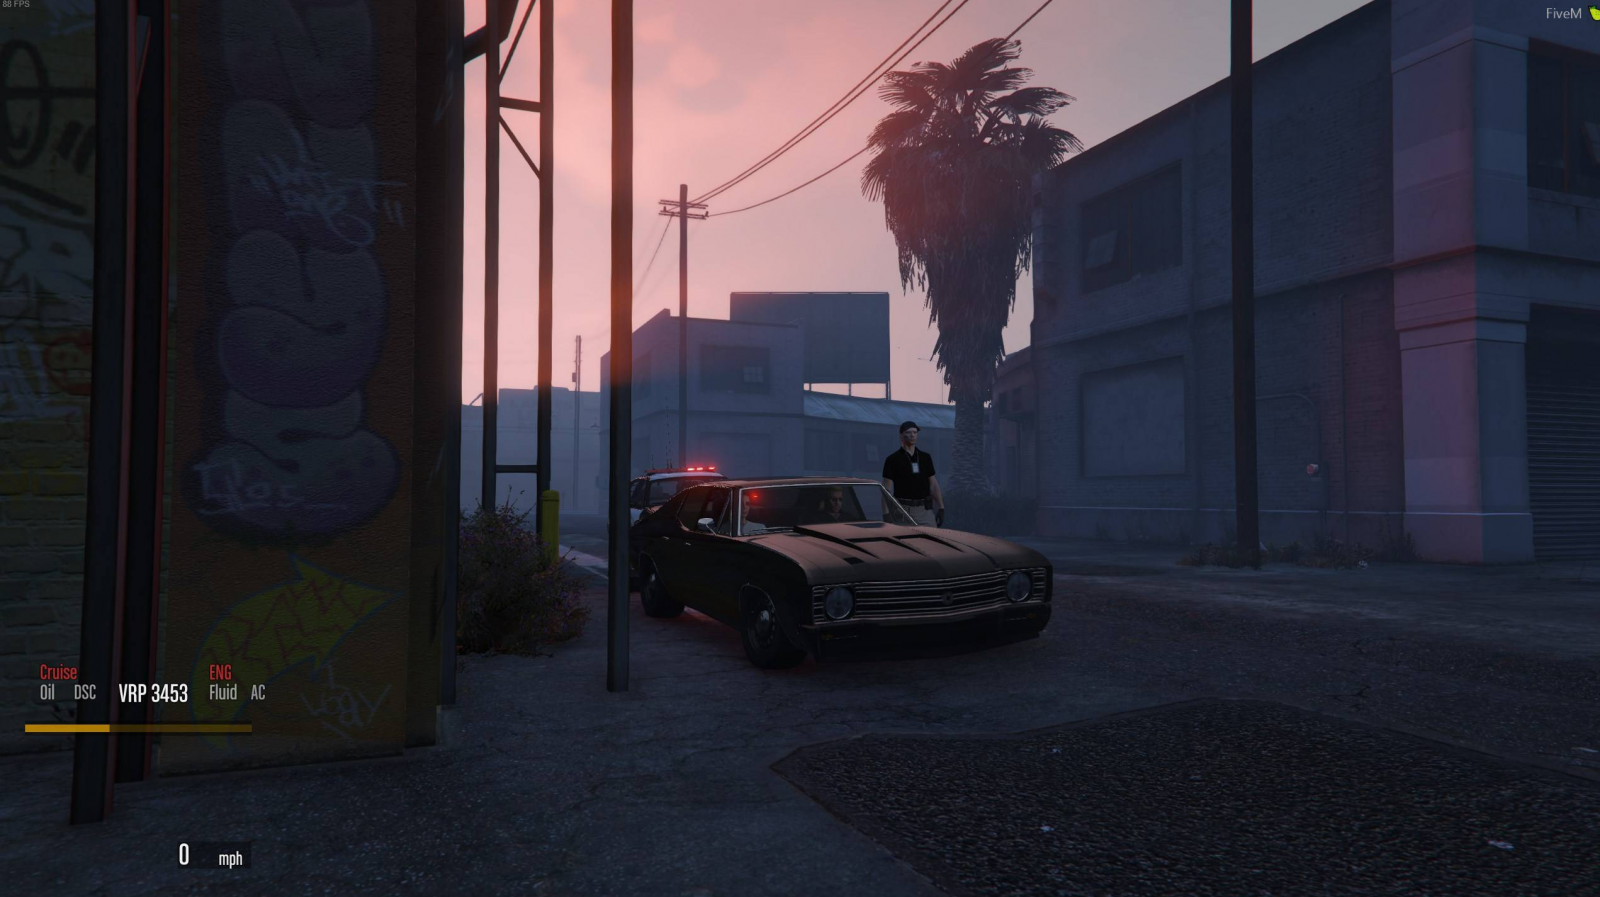 Muscle car - Civilian Operations - Department of Justice Roleplay